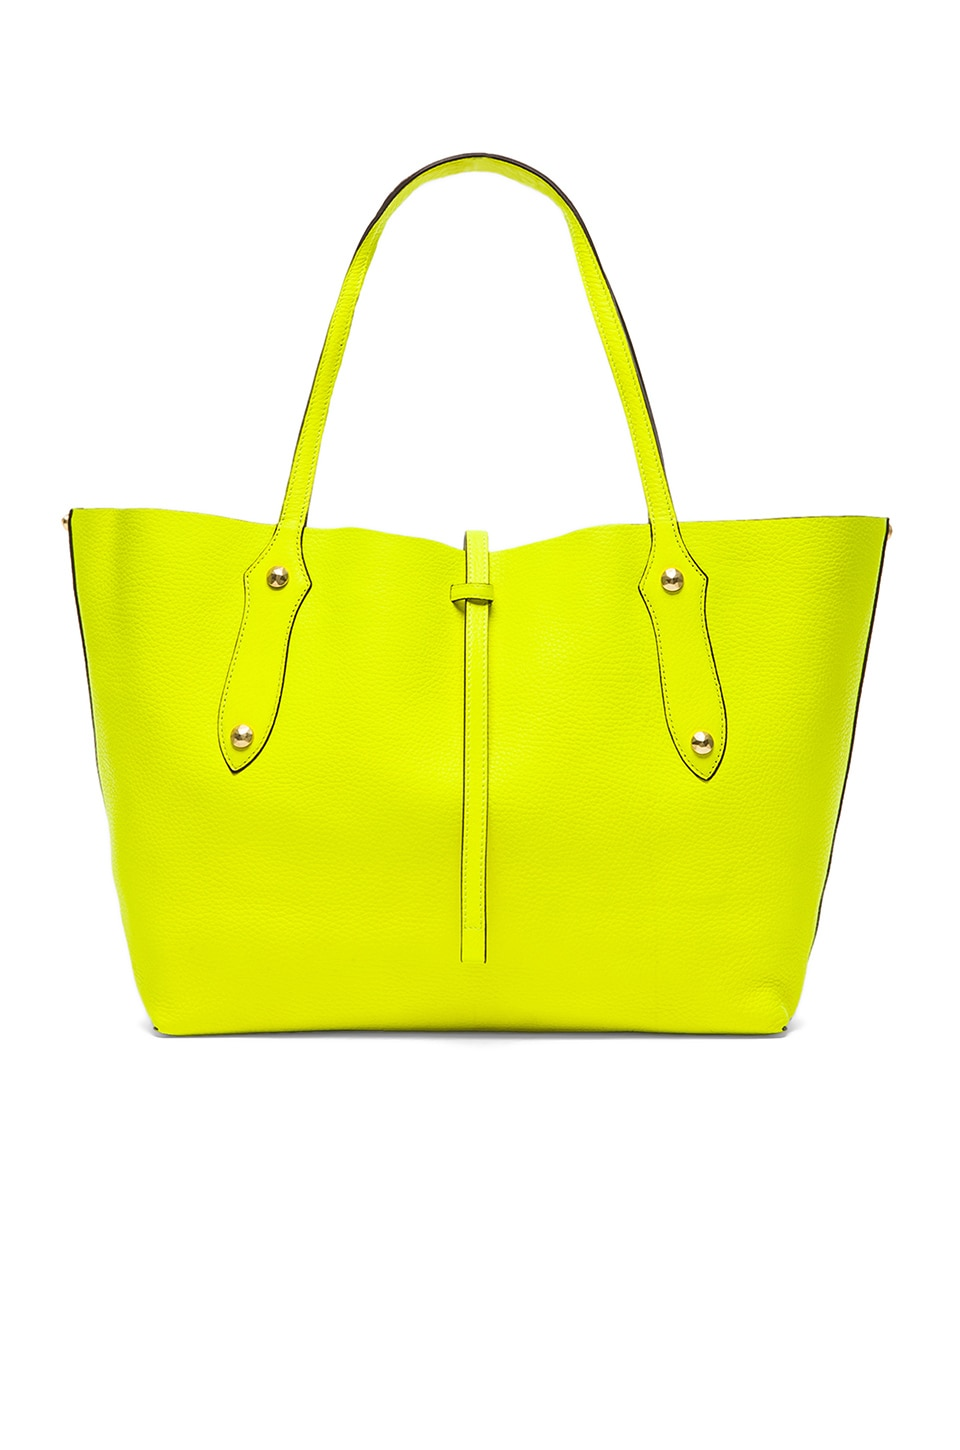 Annabel Ingall Small Isabella Tote in Citrus